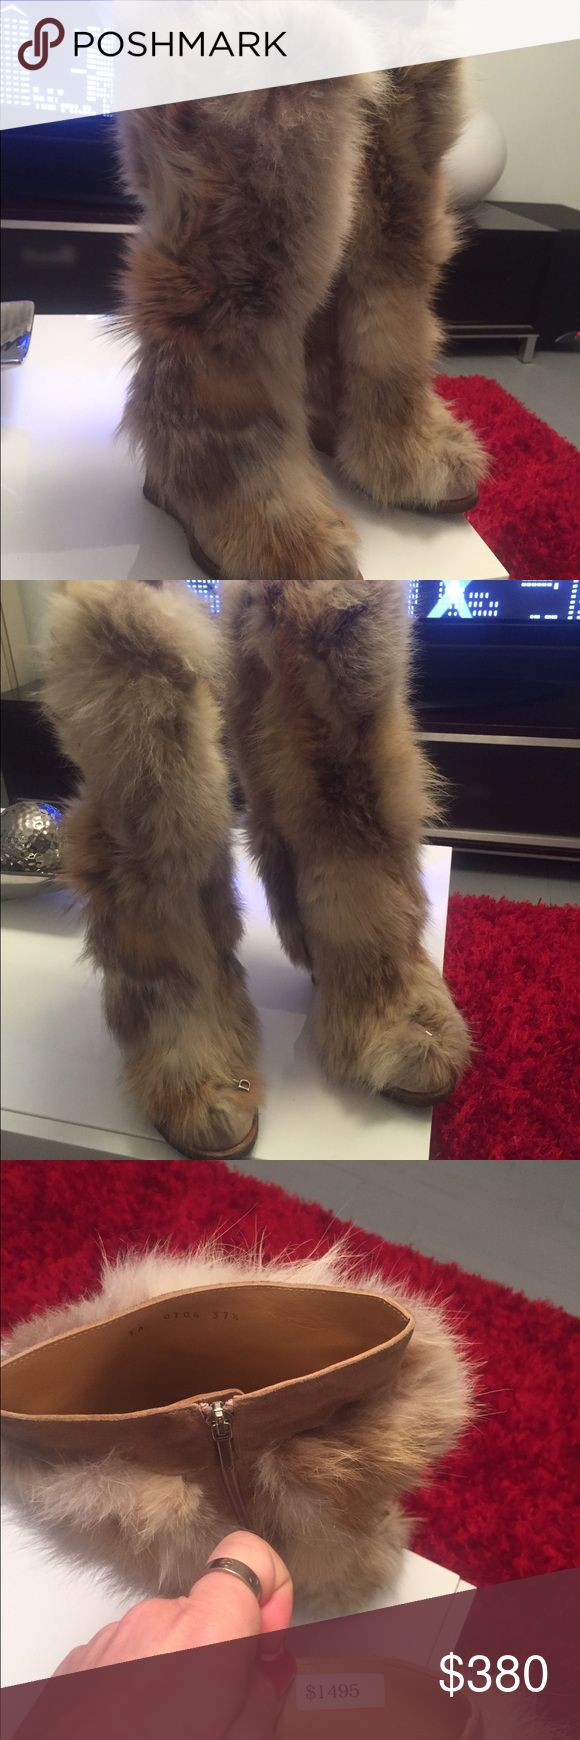 Fur boots Cristian DIOR Very nice , worm and super comfortable Authentic Cristian Dior real Fox fur boots . In s very good condition , the sole of course has a sign of wear . But everything else looks great . Christian Dior Shoes Winter & Rain Boots